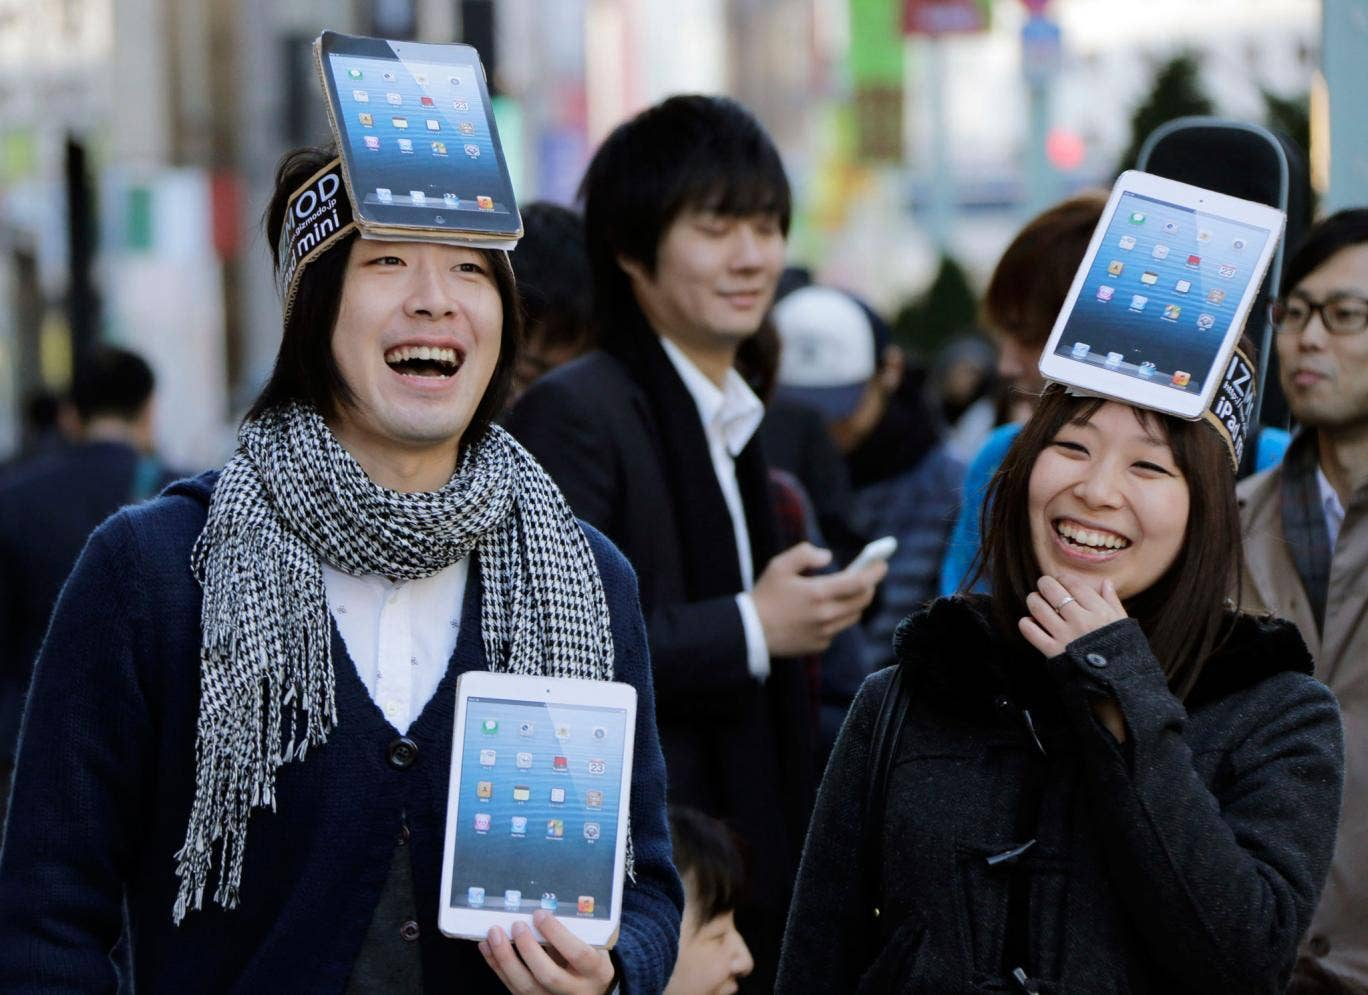 Satisfied Tokyo customers with their new iPad Minis